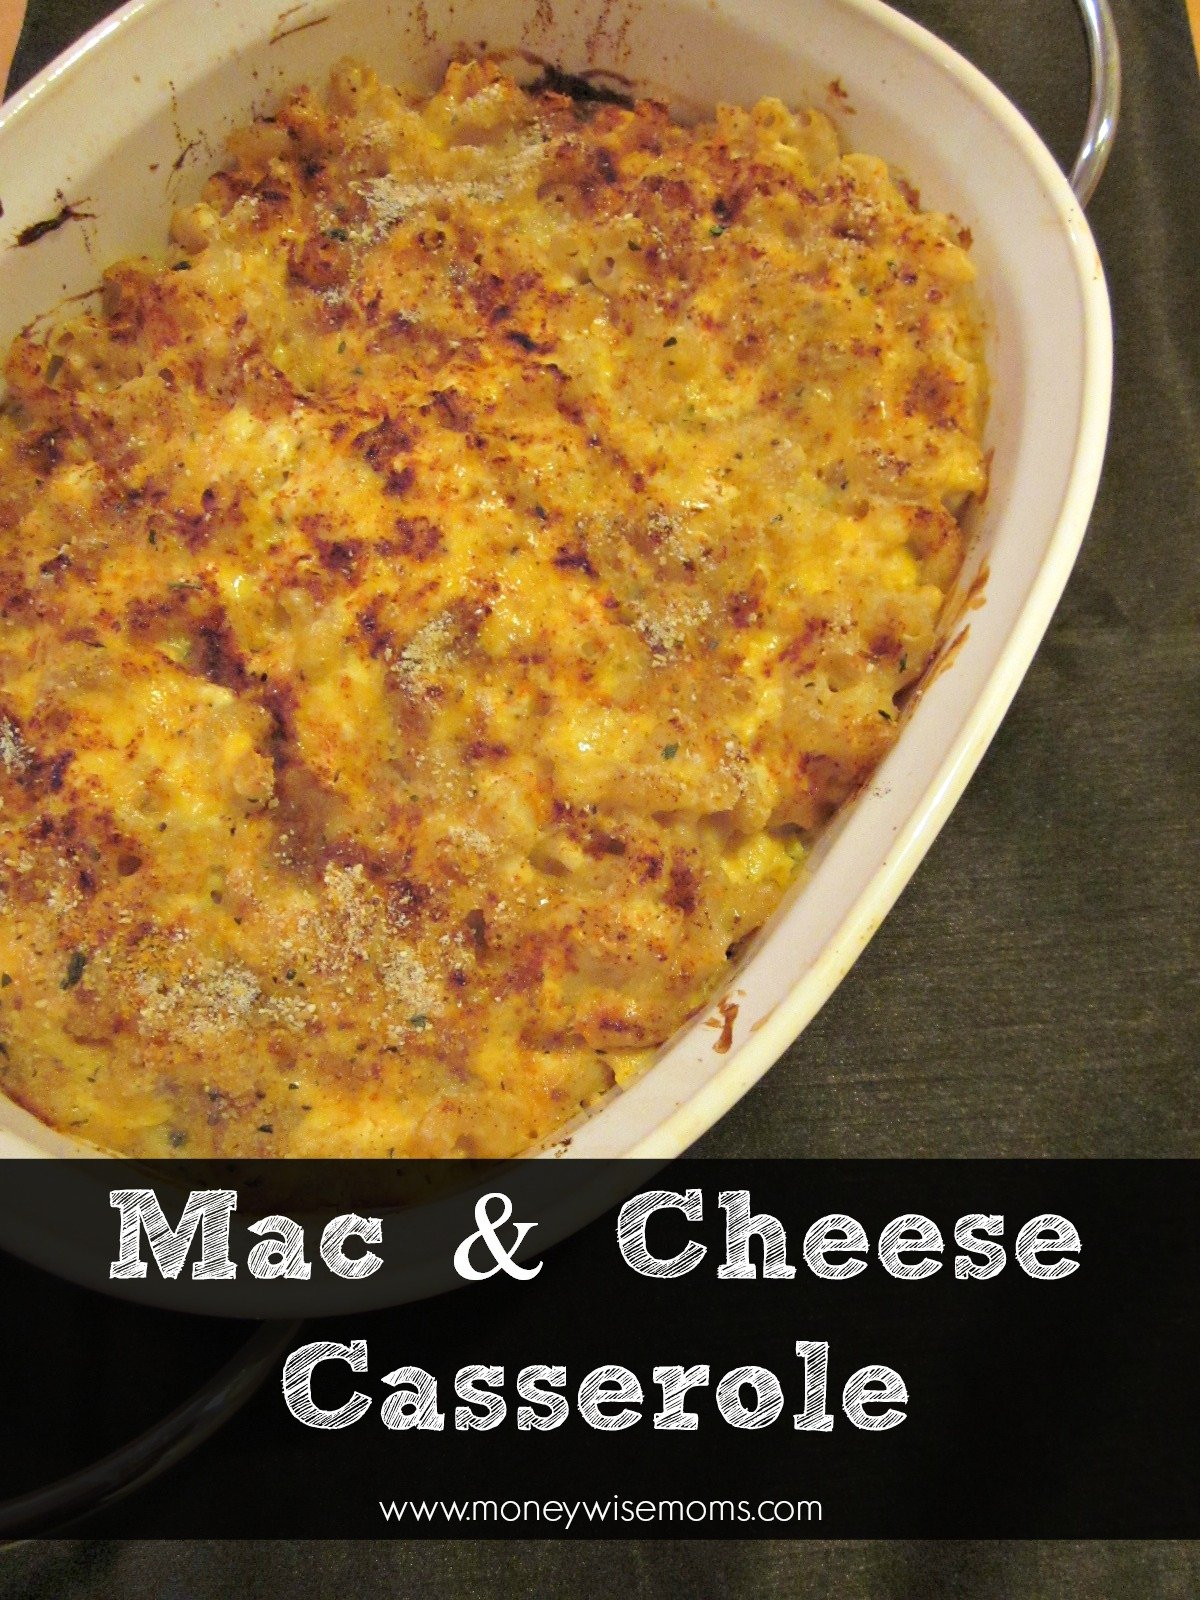 Gluten-Free Mac and Cheese Casserole